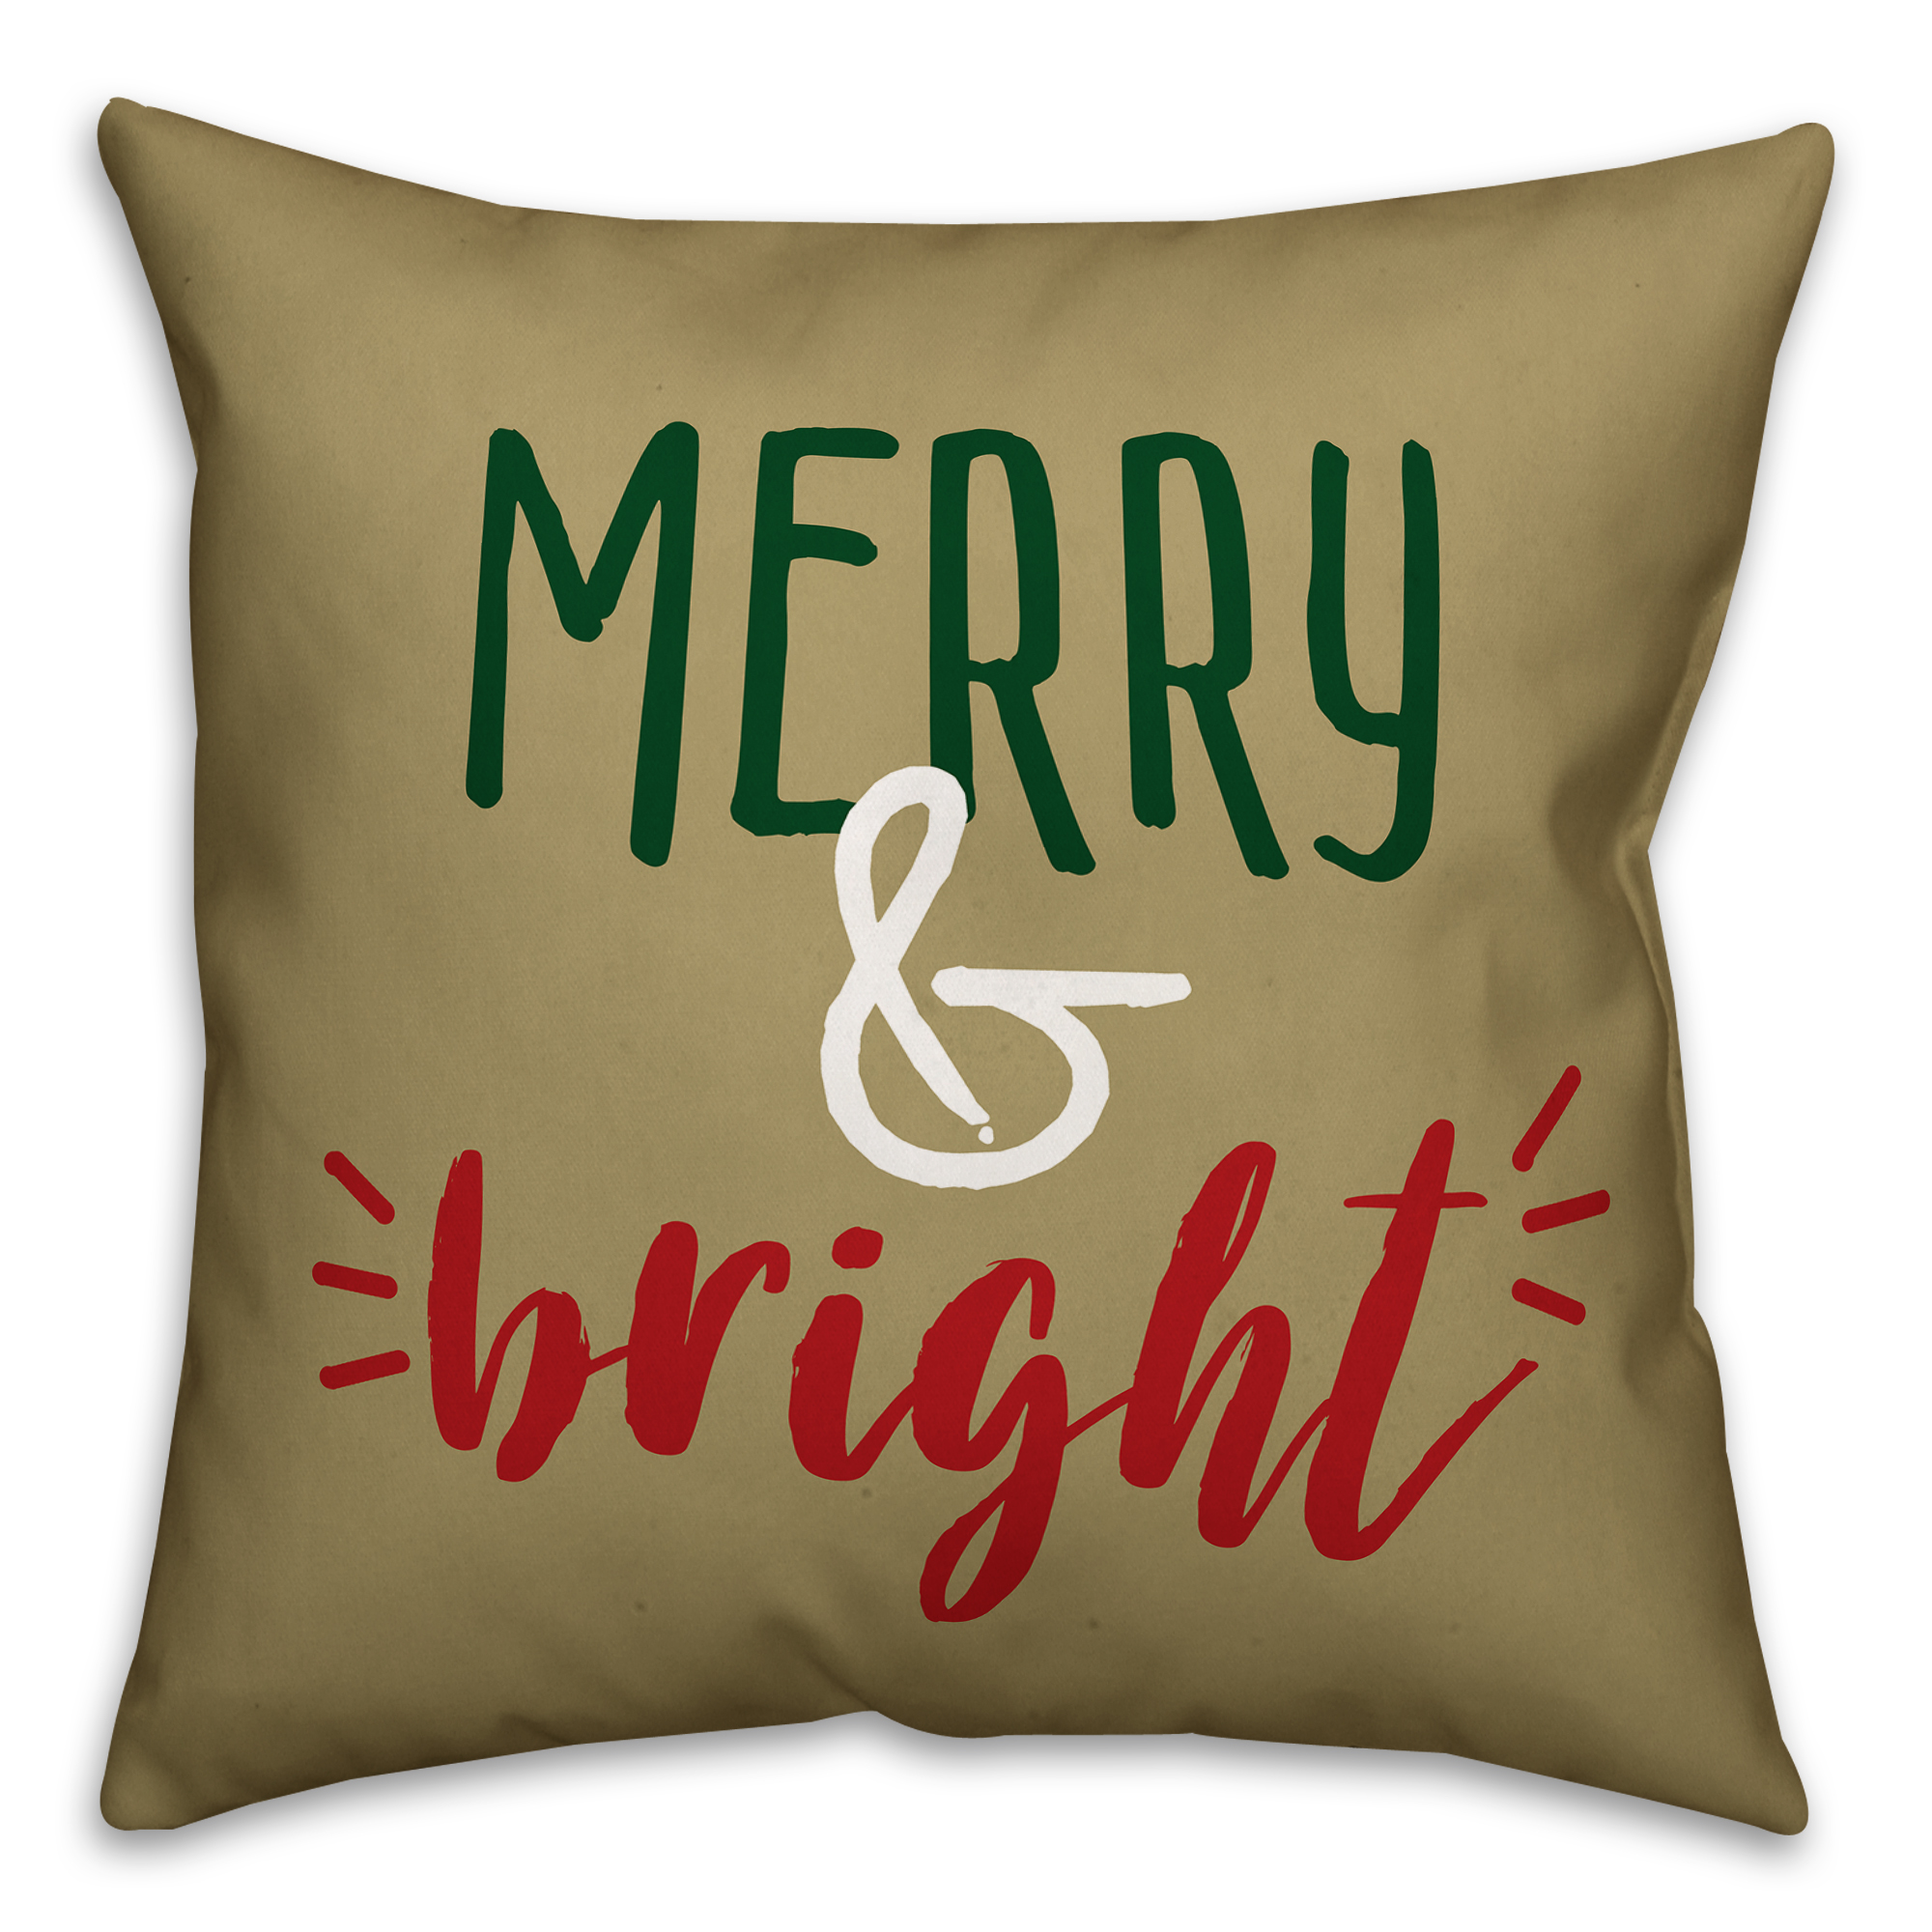 Merry and Bright 18x18 Spun Poly Pillow Cover